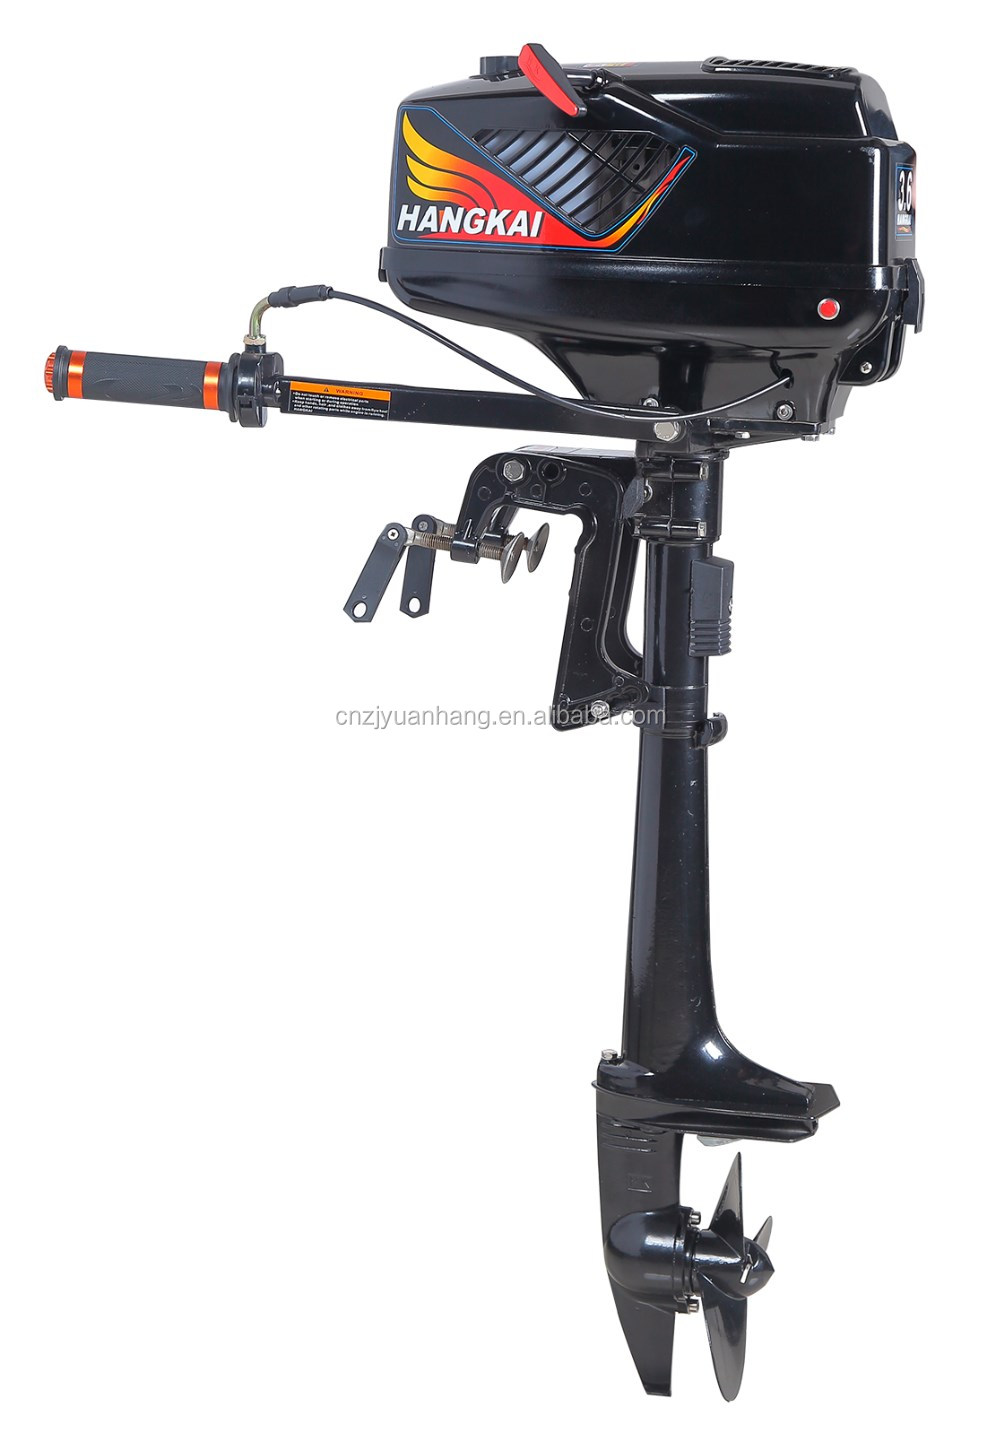 55cc 2 stroke outboard boat motors for sale buy for Yamaha 6hp outboard motor